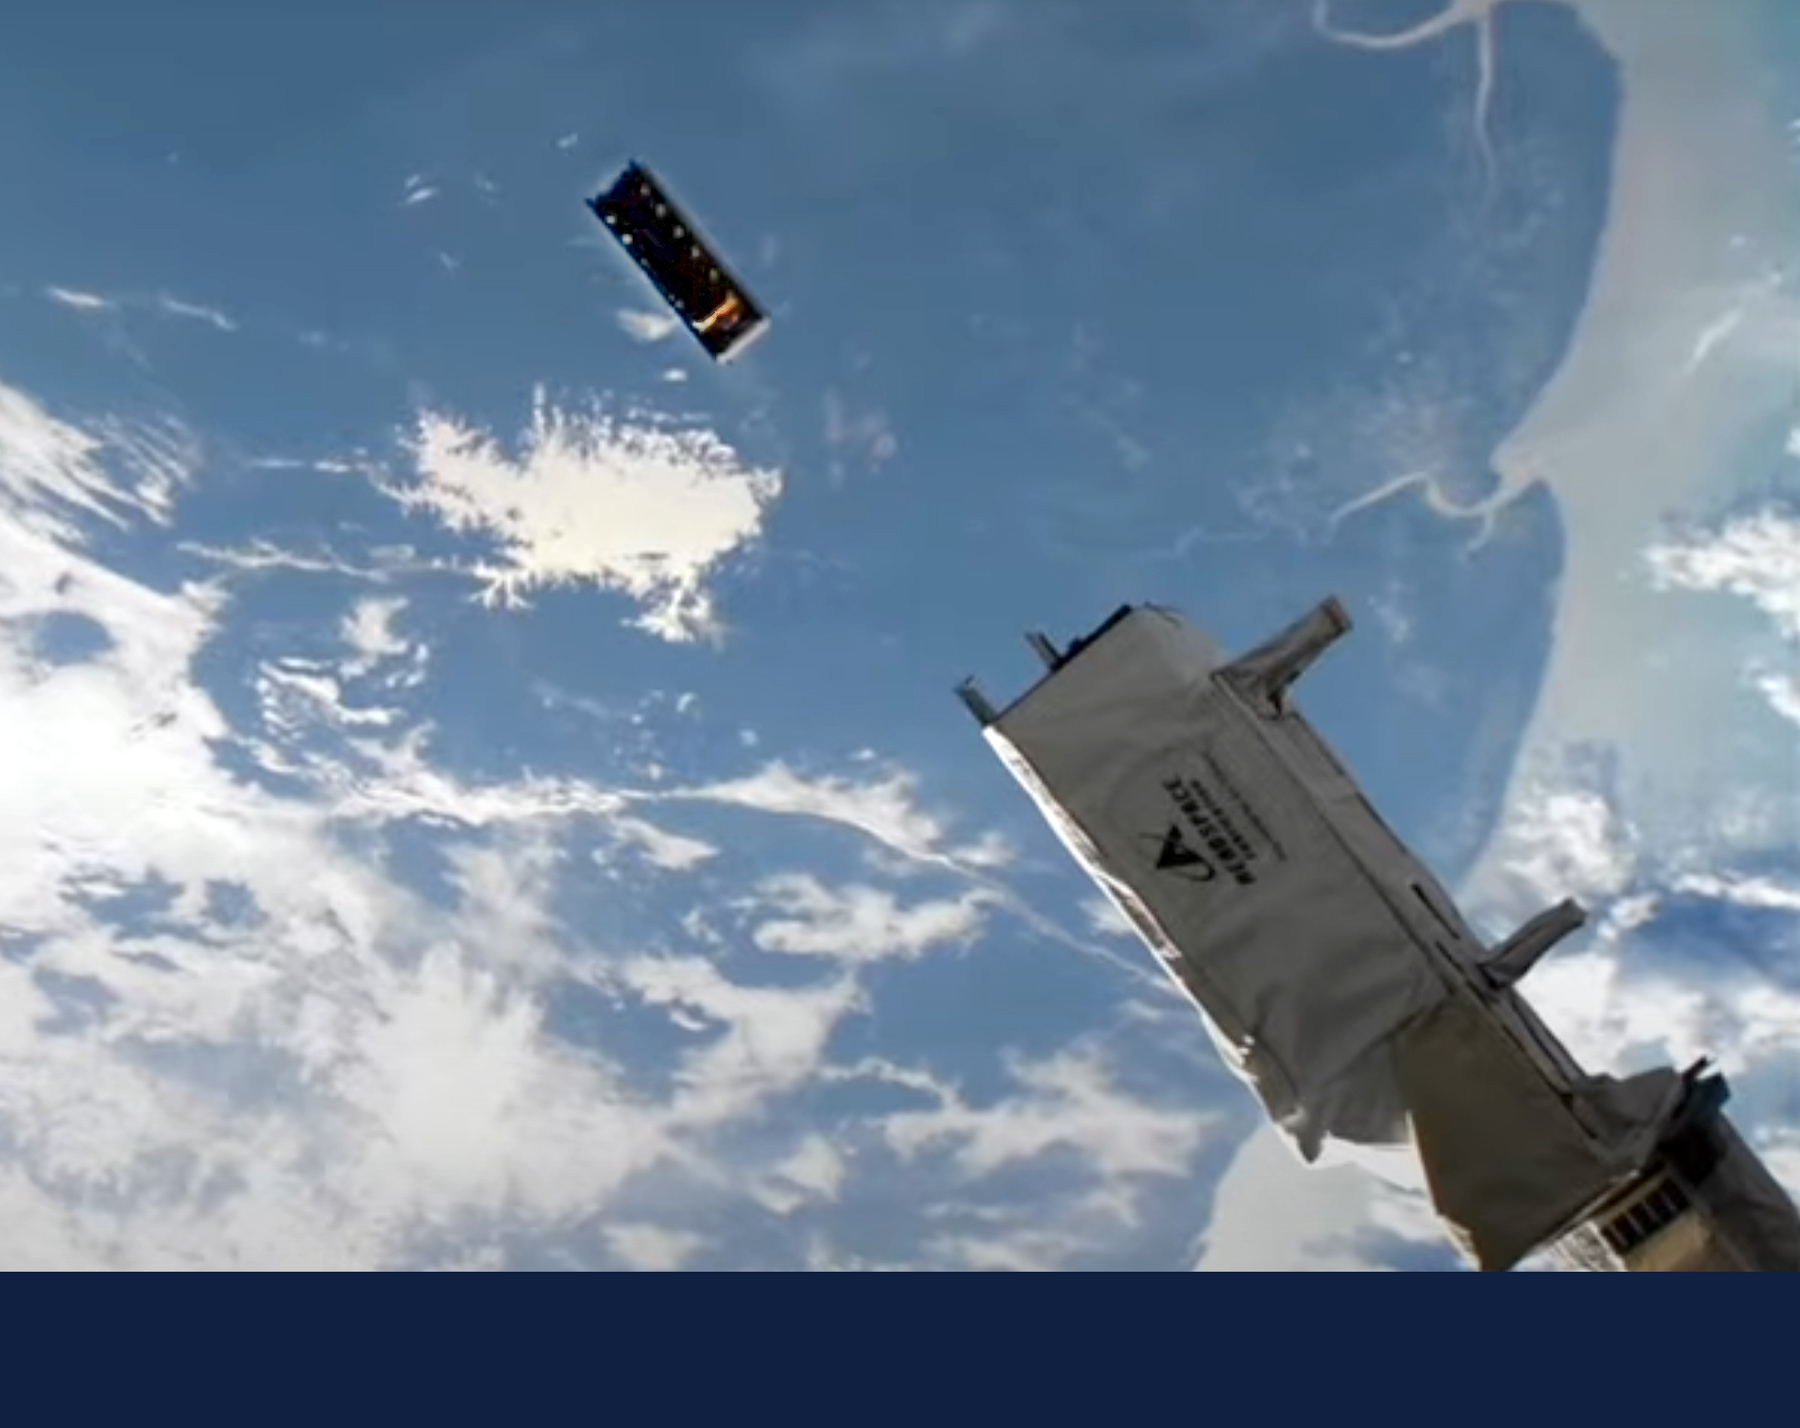 CAPSat is deployed into orbit by robotic arm from the International Space Station on October 12, 2021 . Photo courtesy NASA/ISS